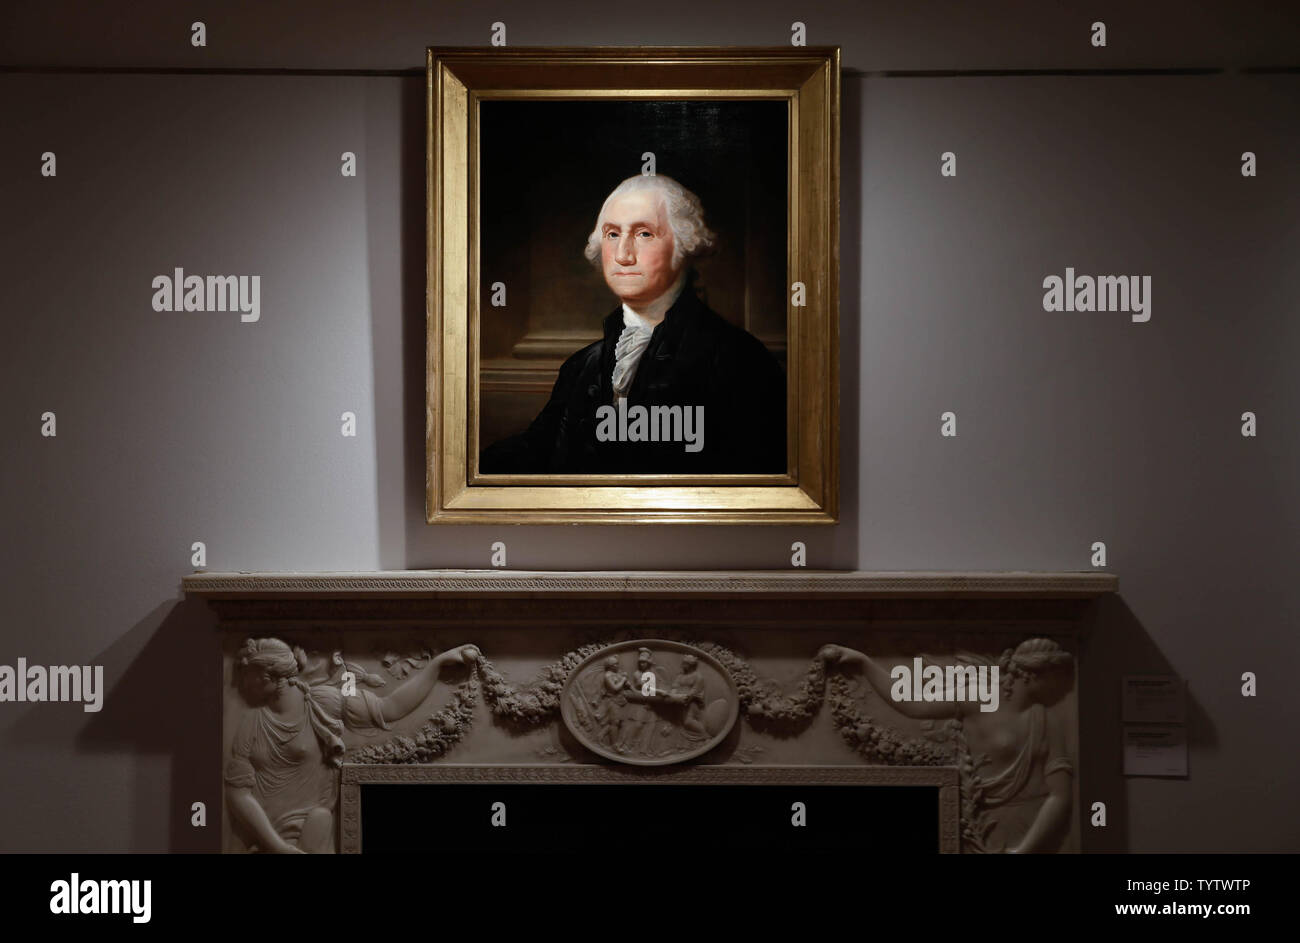 A portrait of George Washington is on display at a press preview of an upcoming auction titled 'Important American Furniture, Folk Art, Silver and Prints' at Christie's in New York City on January 12, 2019. The auction features Ammi Phillips' 'Girl in a Red Dress with a Dog', and Edward Hicks' 'Peaceable Kingdom, both estd $800,000 - $1.2 million. The auction takes place on January 17th and 18th.     Photo by John Angelillo/UPI - Stock Image